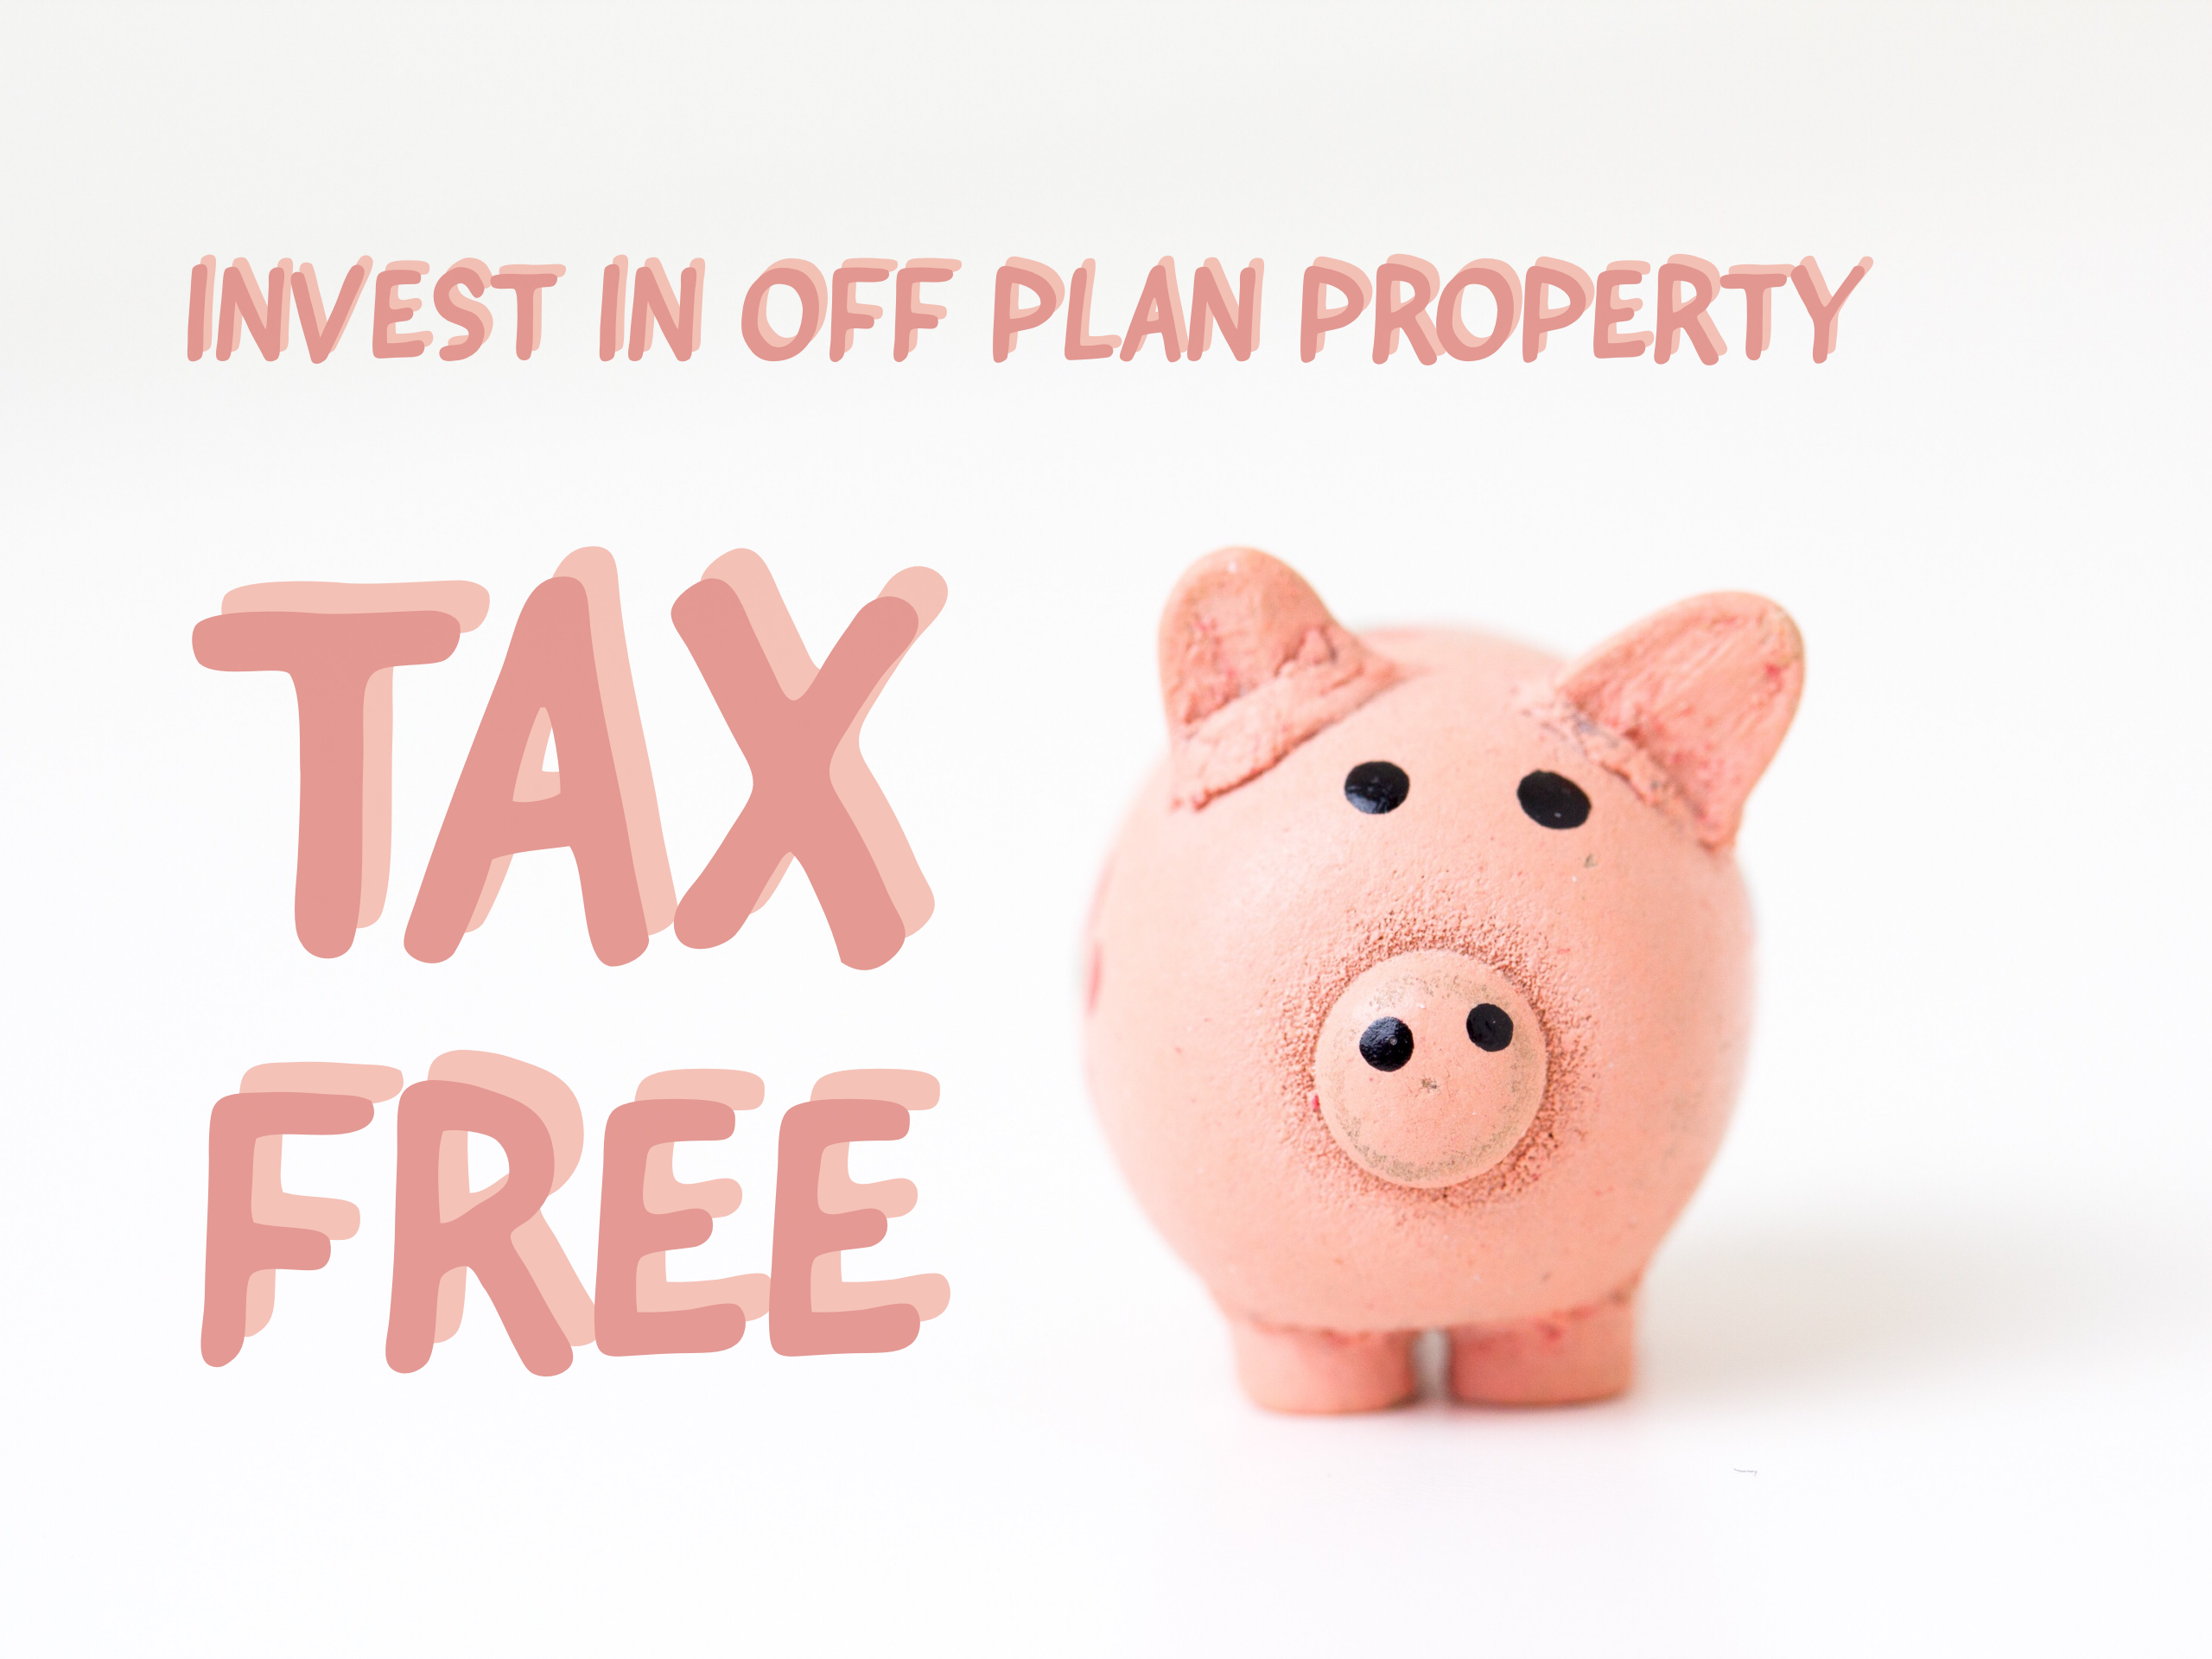 Tax free property investment Image